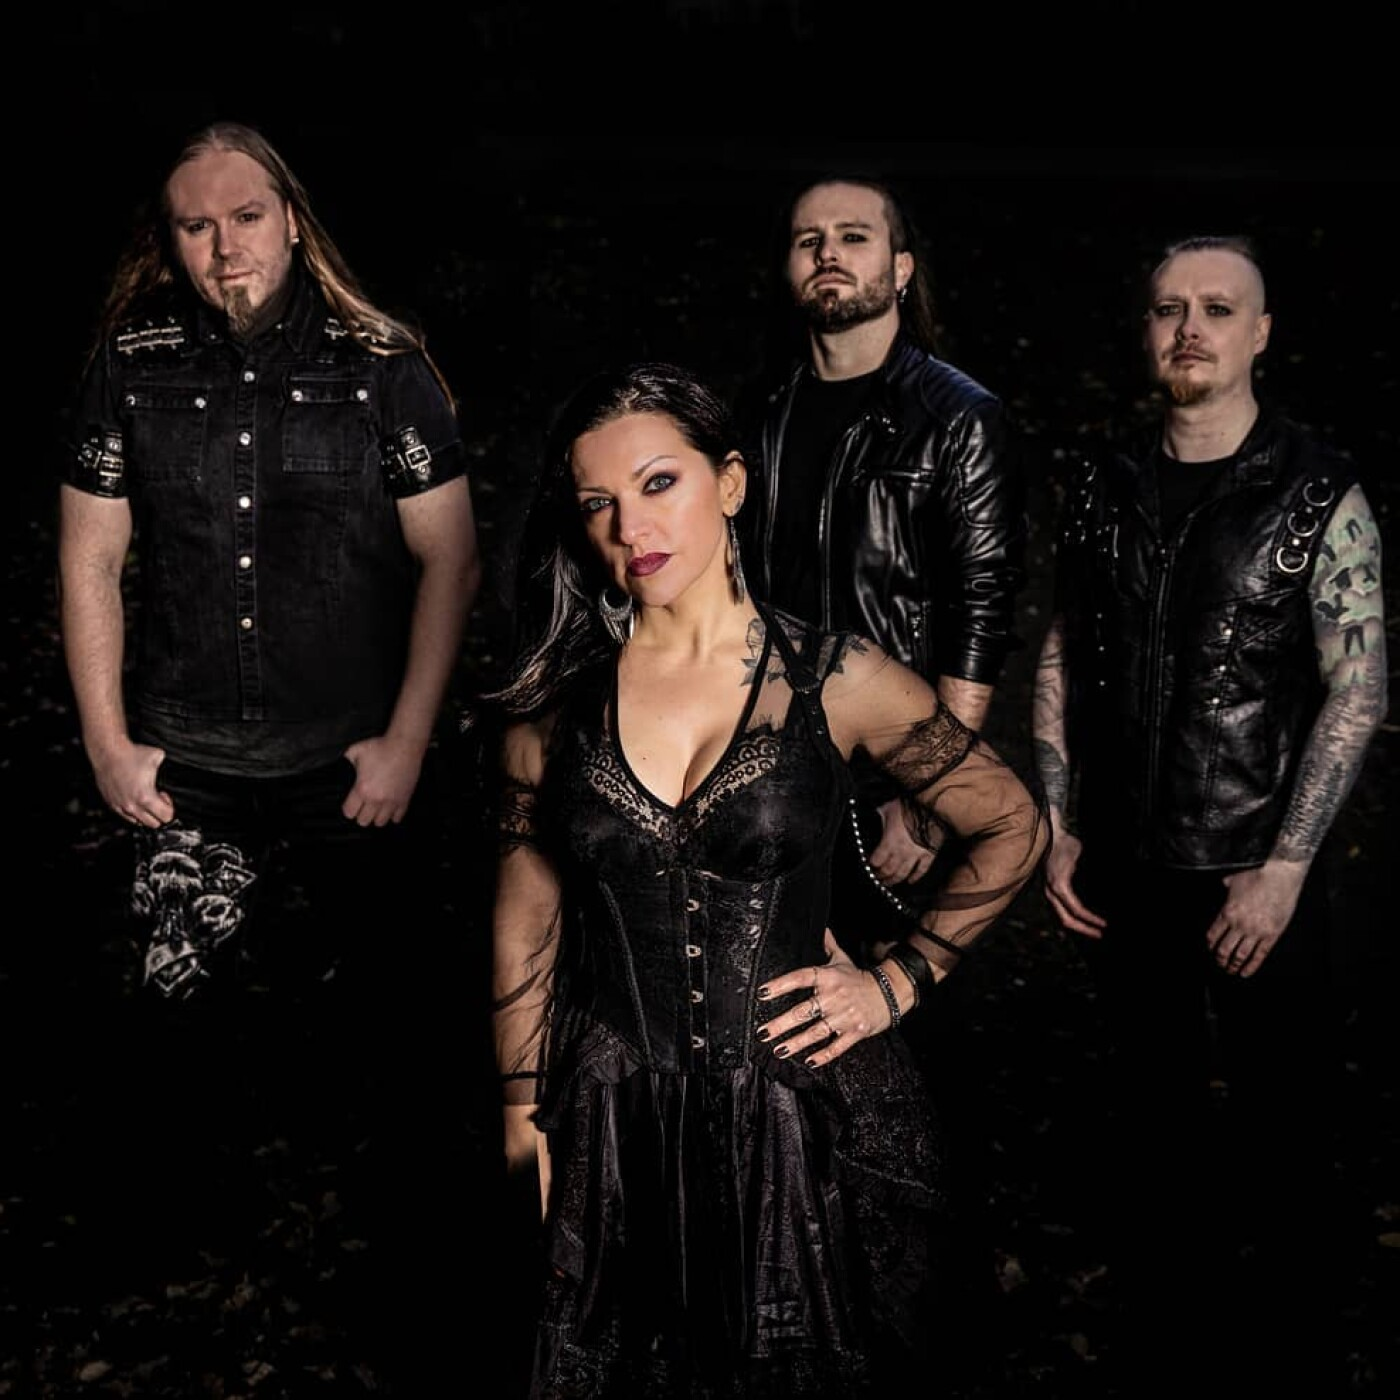 213Rock Podcast Harrag Melodica Live interview with Morten Veland of Sirenia New album Riddles Ruins & Revelations  11 02 2021